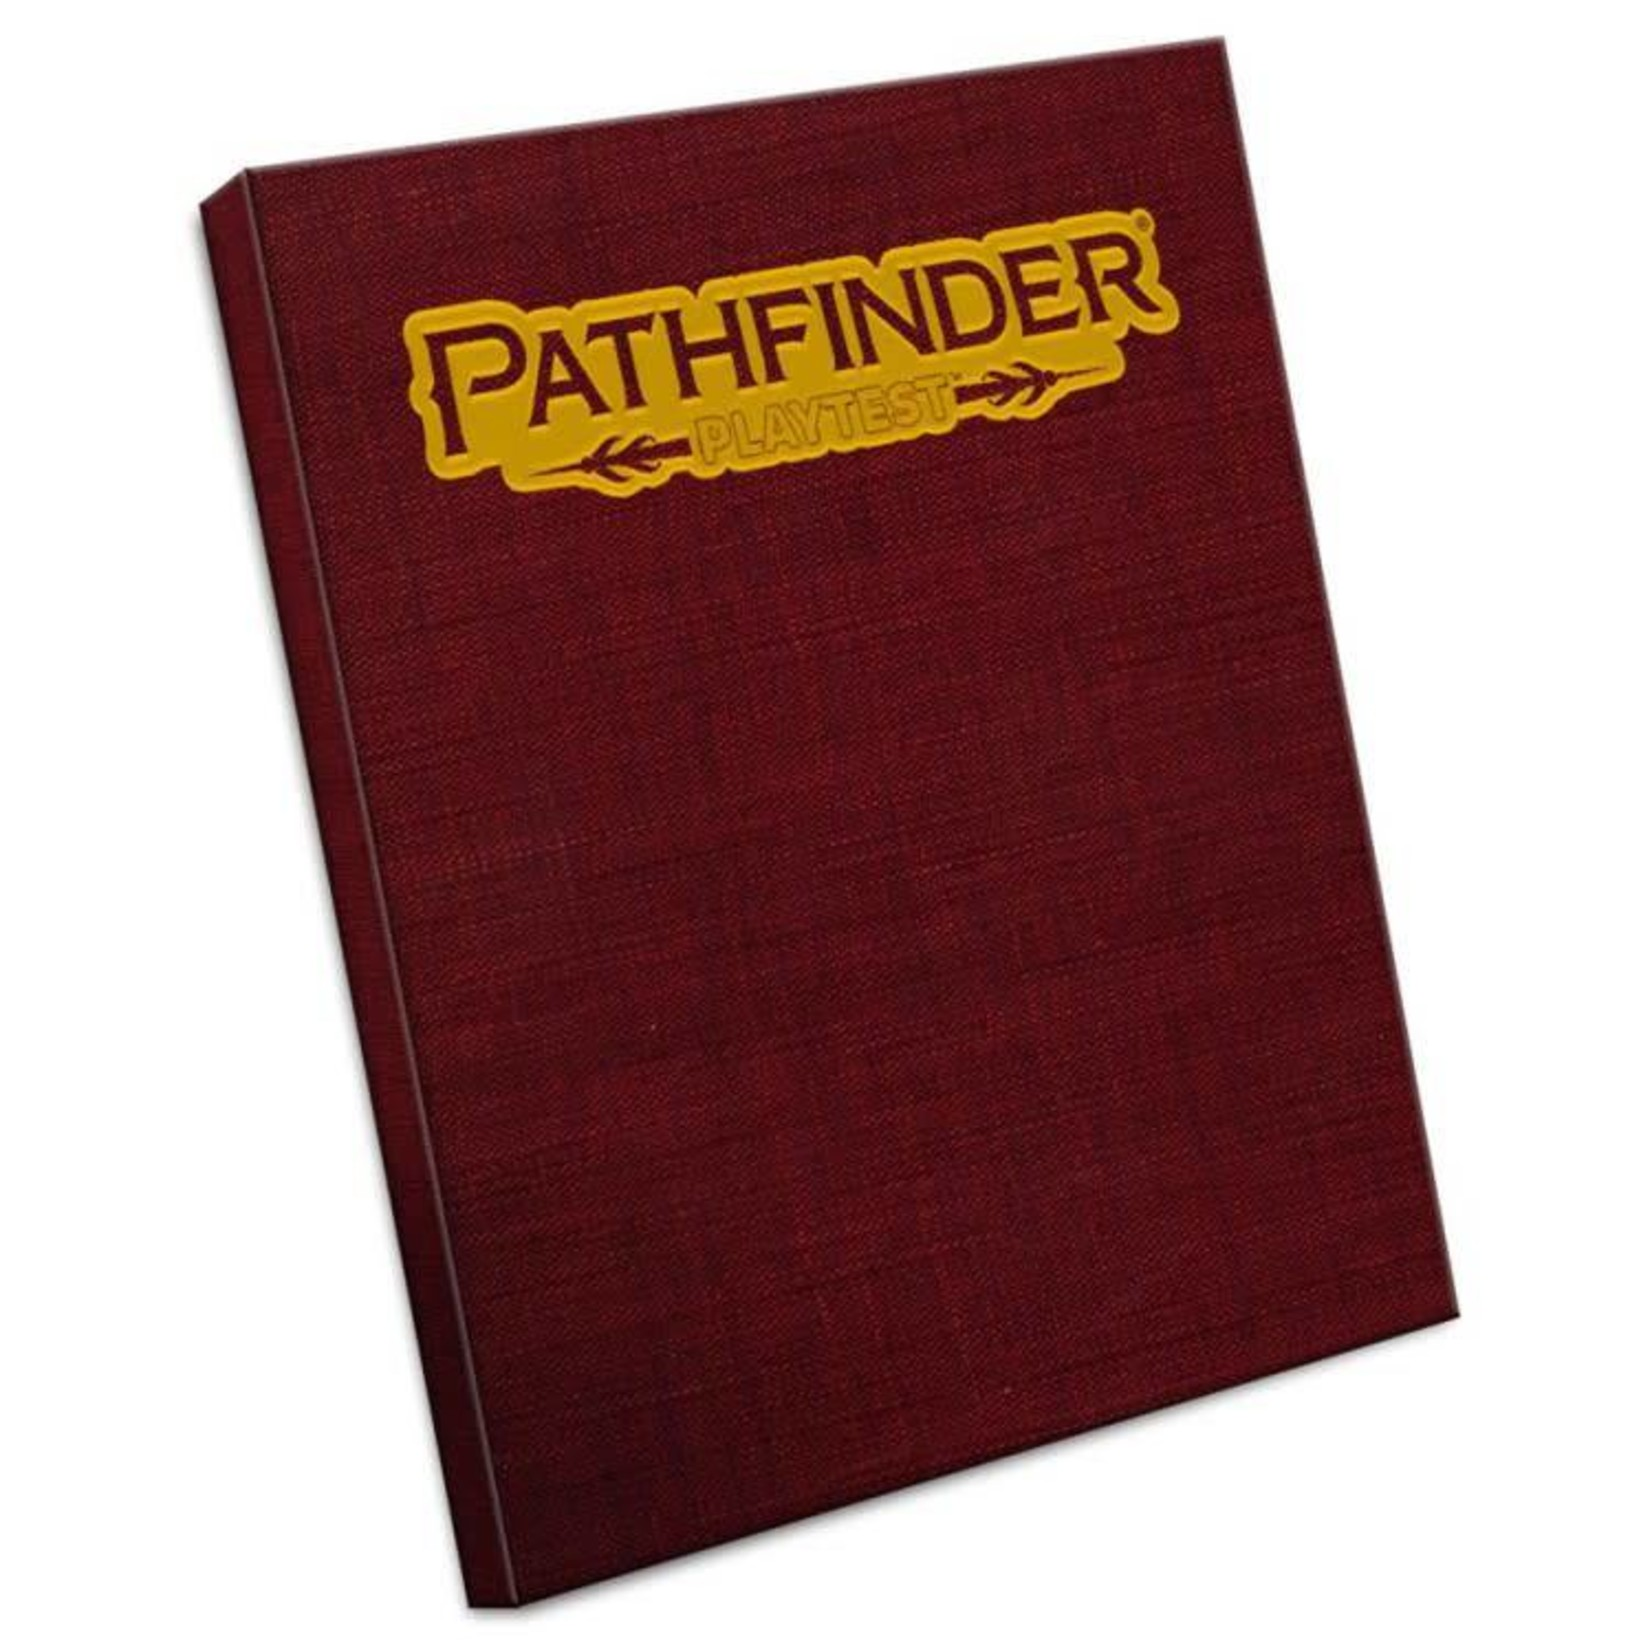 Paizo Pathfinder Roleplaying Game 2.0: Playtest Rulebook - Special Edition